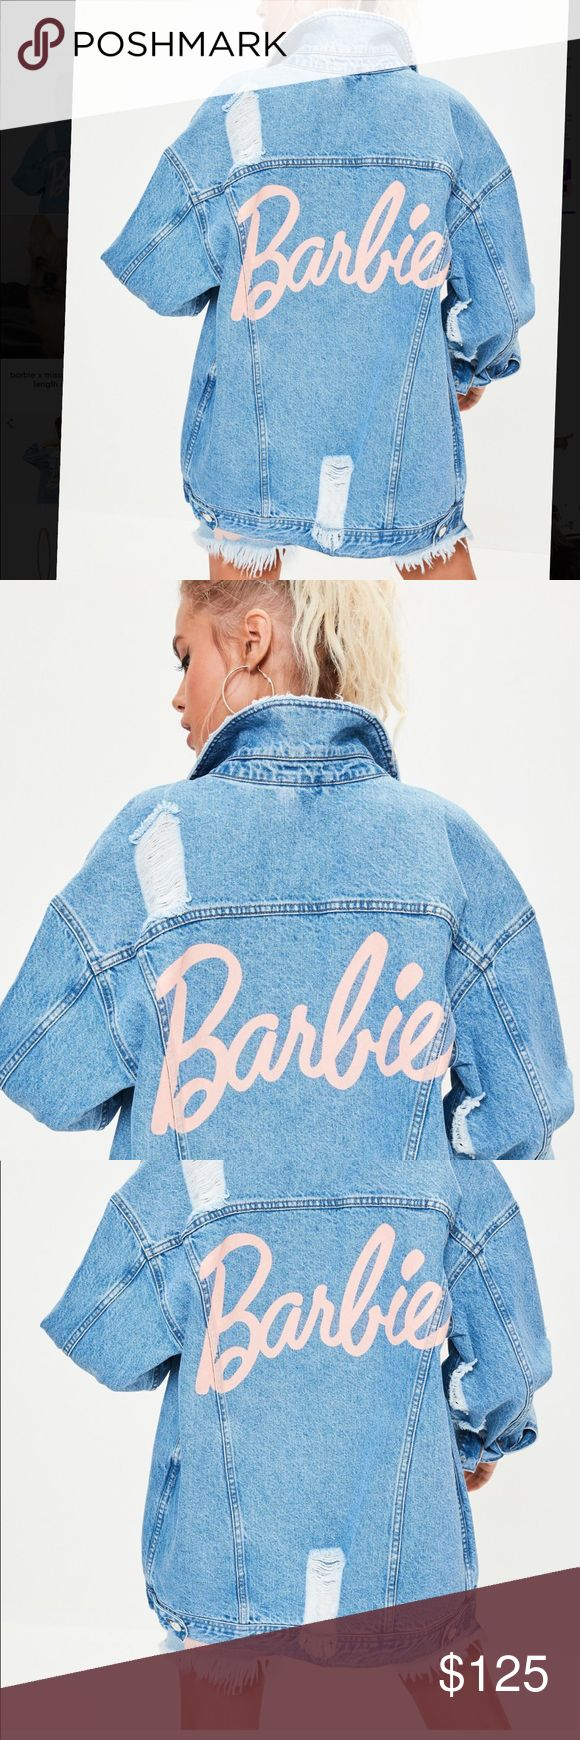 NWT MISSGUIDED X BARBIE denim jacket Brand new, keeps selling out online. From the MISSGUIDED X BARBIE collection. It's a denim over-sized jacket. This jacket is not true to fit. But this jacket is supposed to be over-sized. Very cute. The buttons and denim of are good quality and are sturdy when buttoning up. Size 6 US. Which is a medium according to their conversion chart online. Price is firm due to the expensive price I paid when it launched. Reg. Length not the long lines one. There's 2…